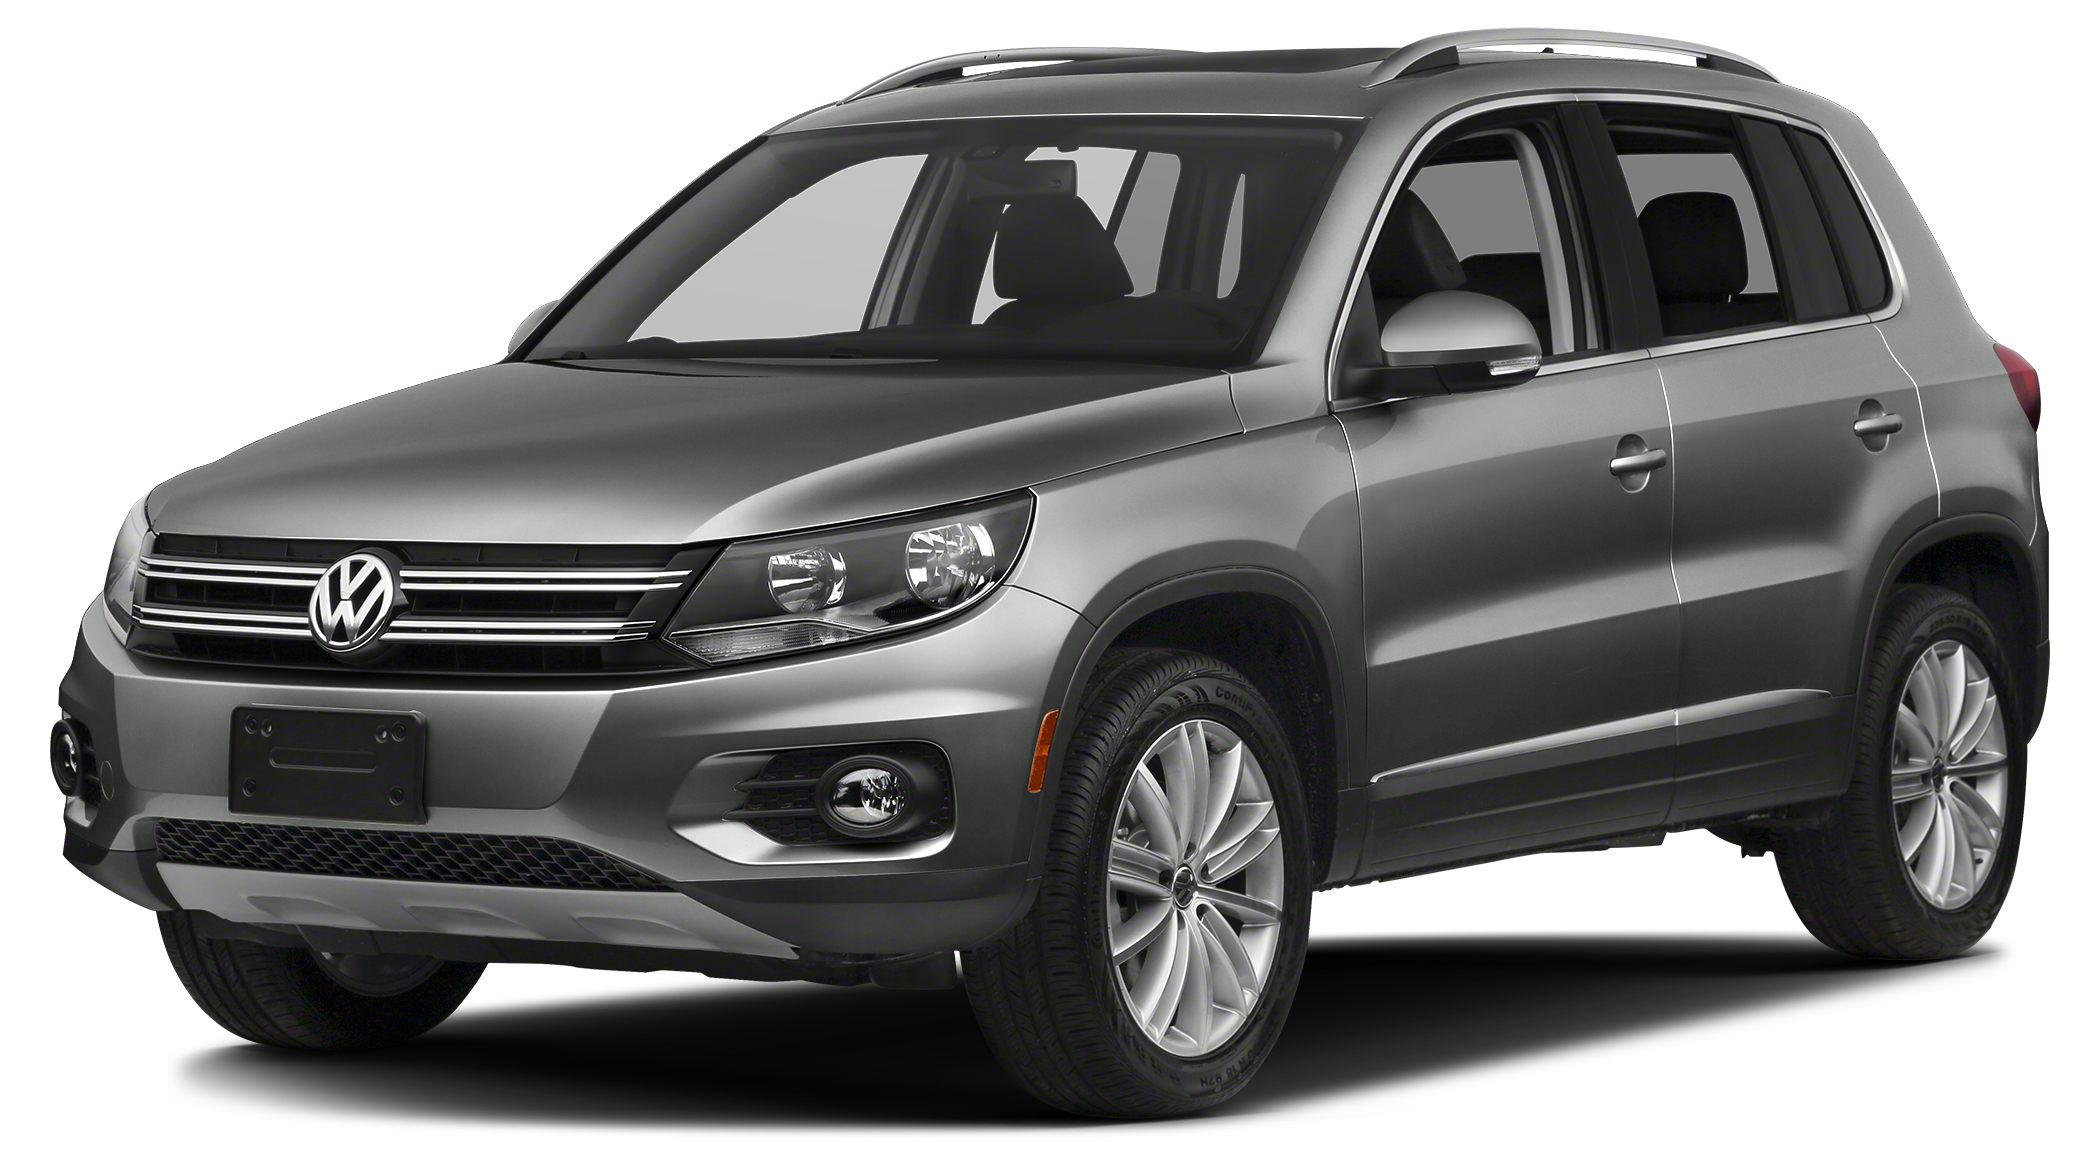 2012 Volkswagen Tiguan SEL OUR PRICESYoure probably wondering why our prices are so much lower t